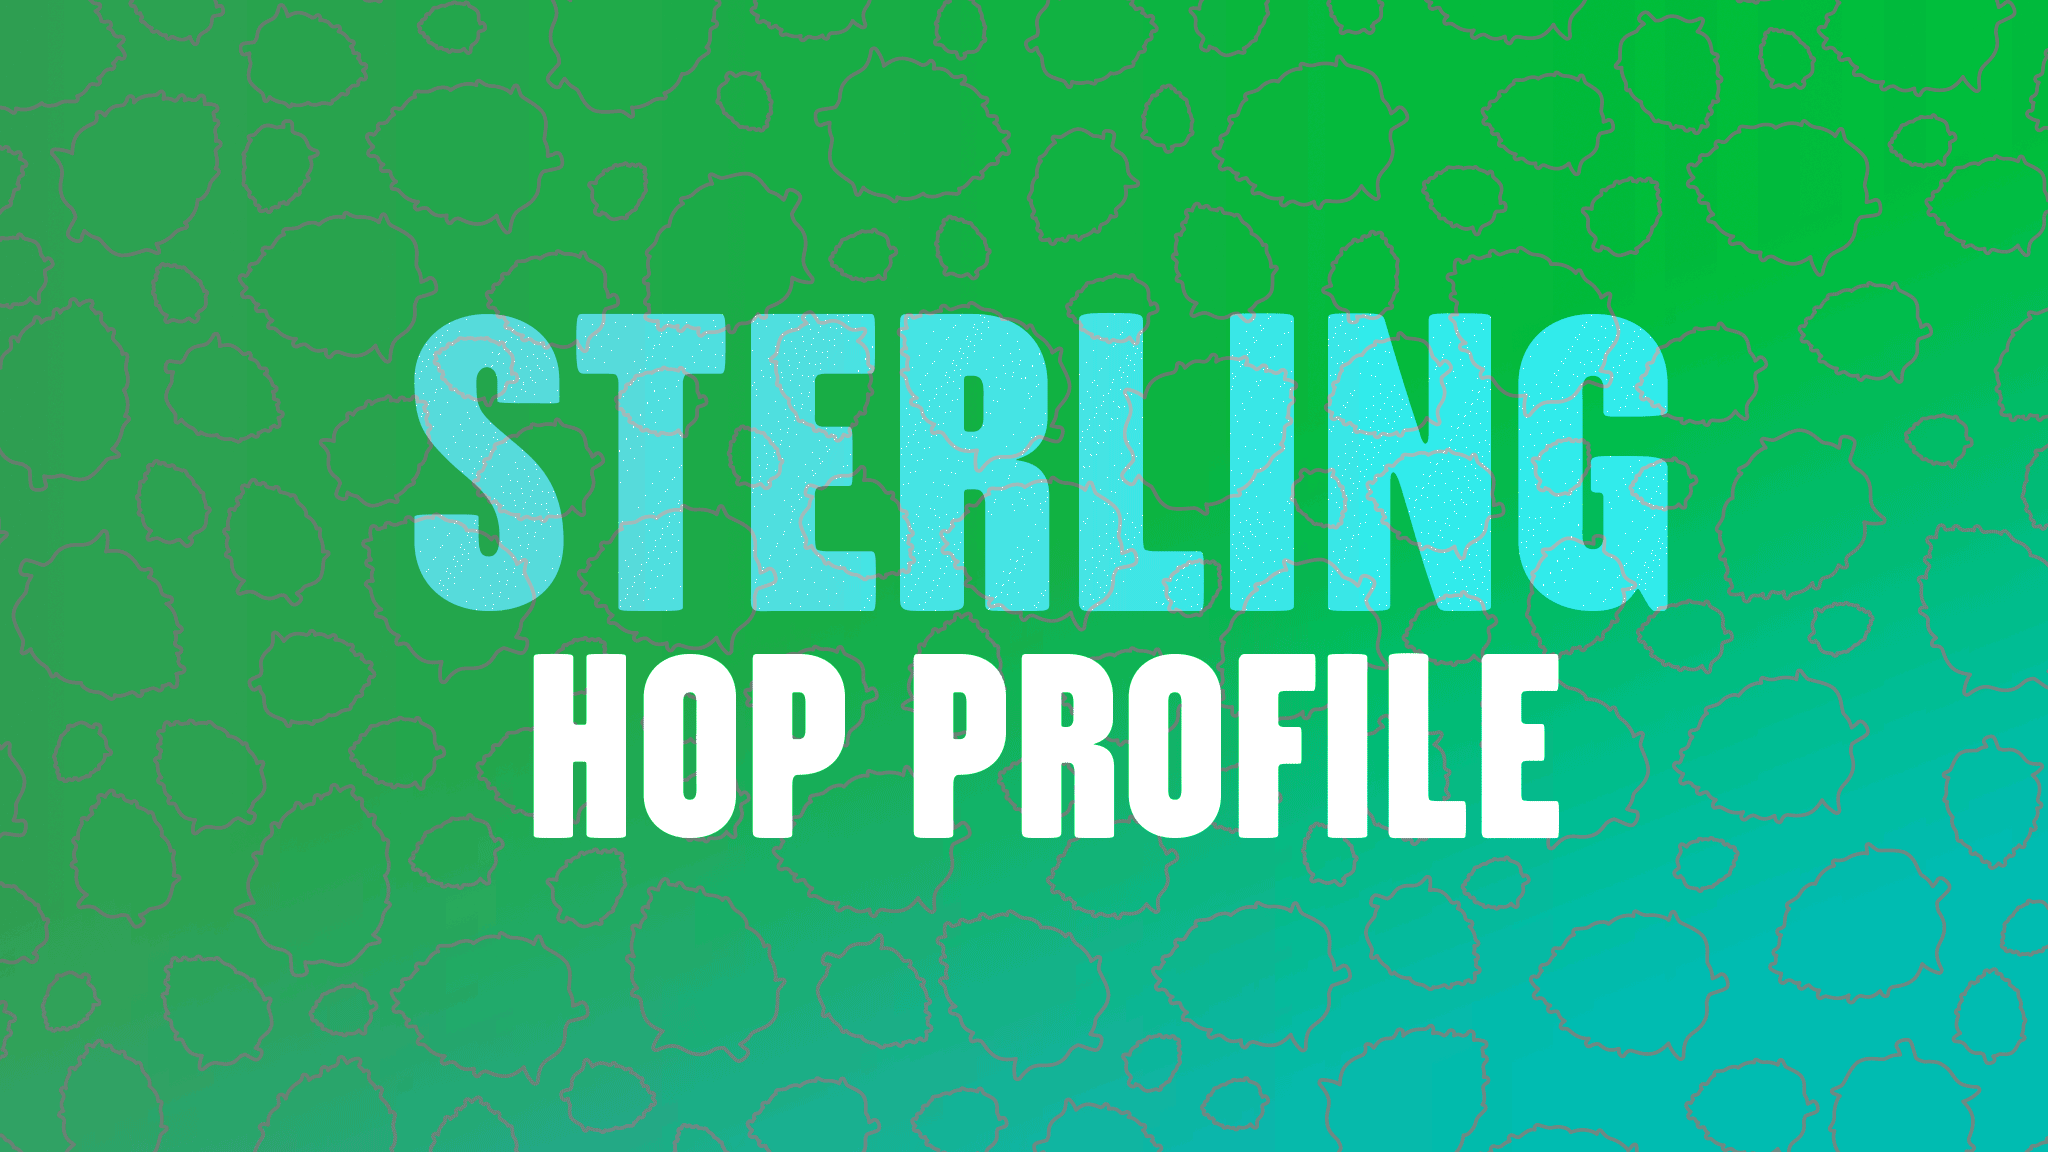 Hop Profile: Sterling